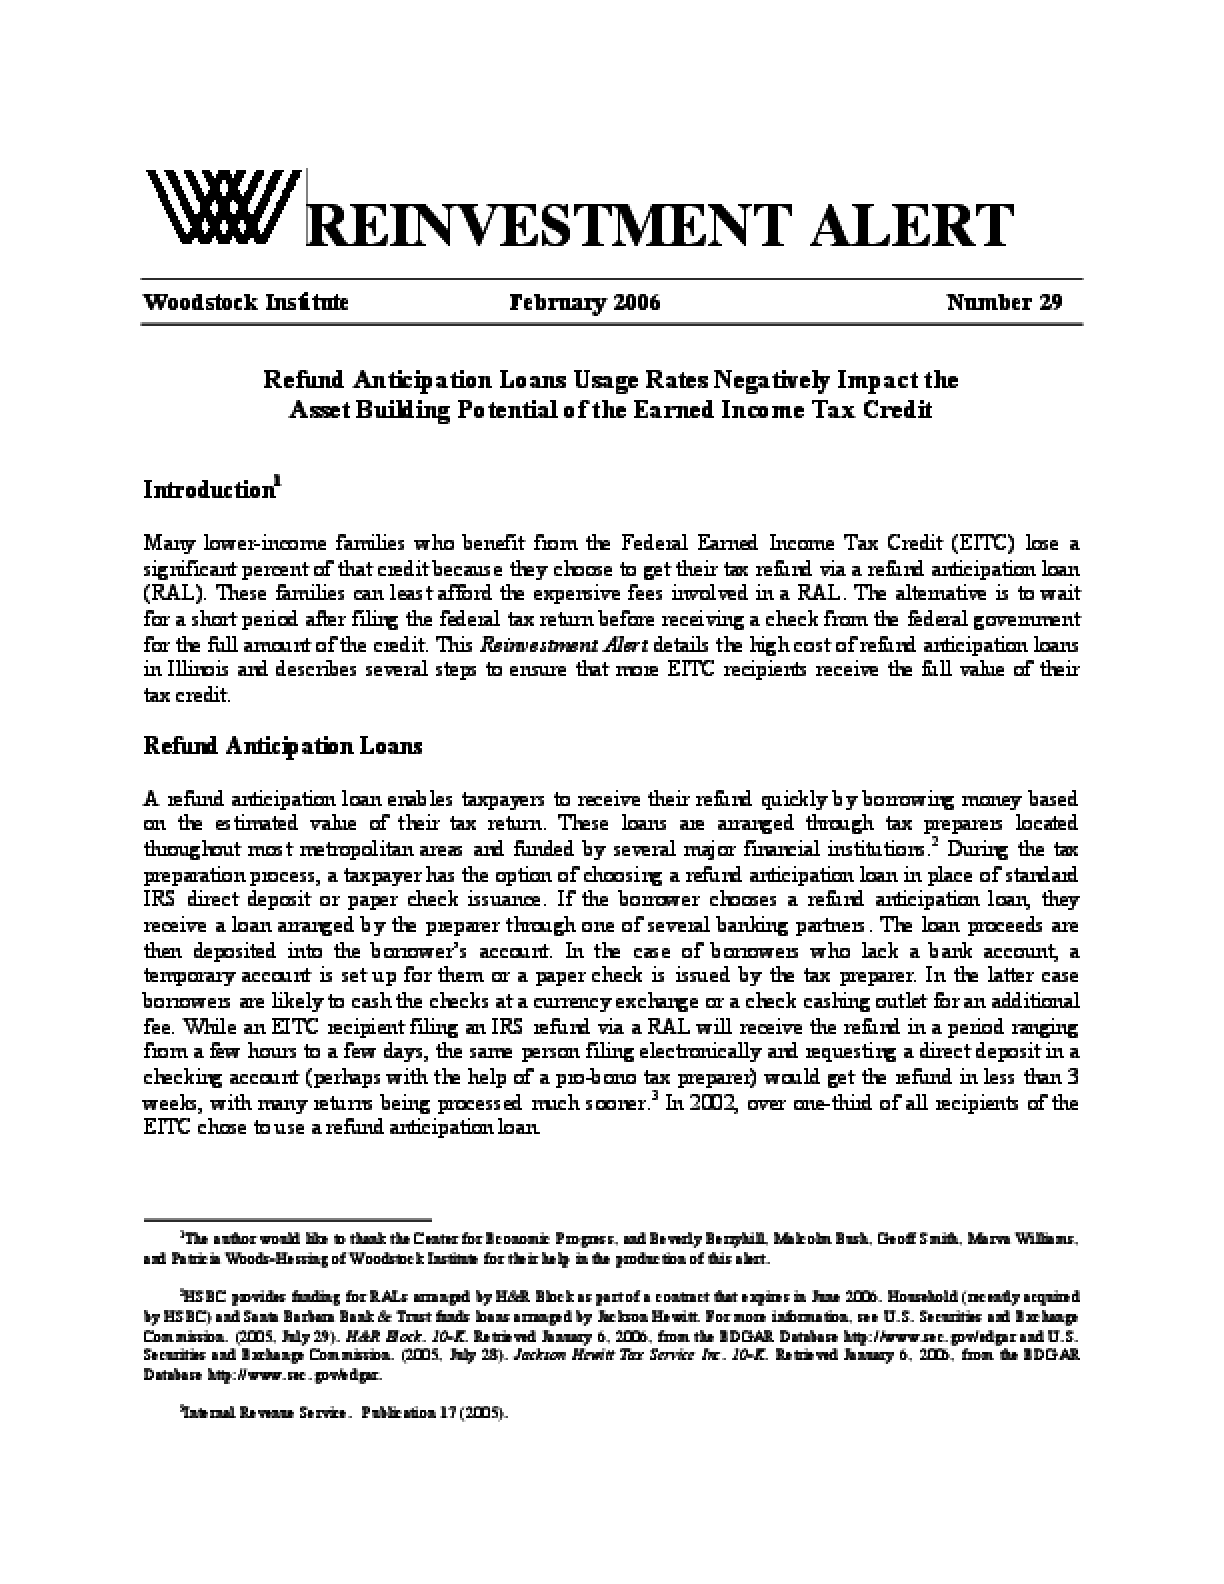 Reinvestment Alert 29: Refund Anticipation Loan Usage Rates Negatively Impact the Asset Building Potential of the Earned Income Tax Credit